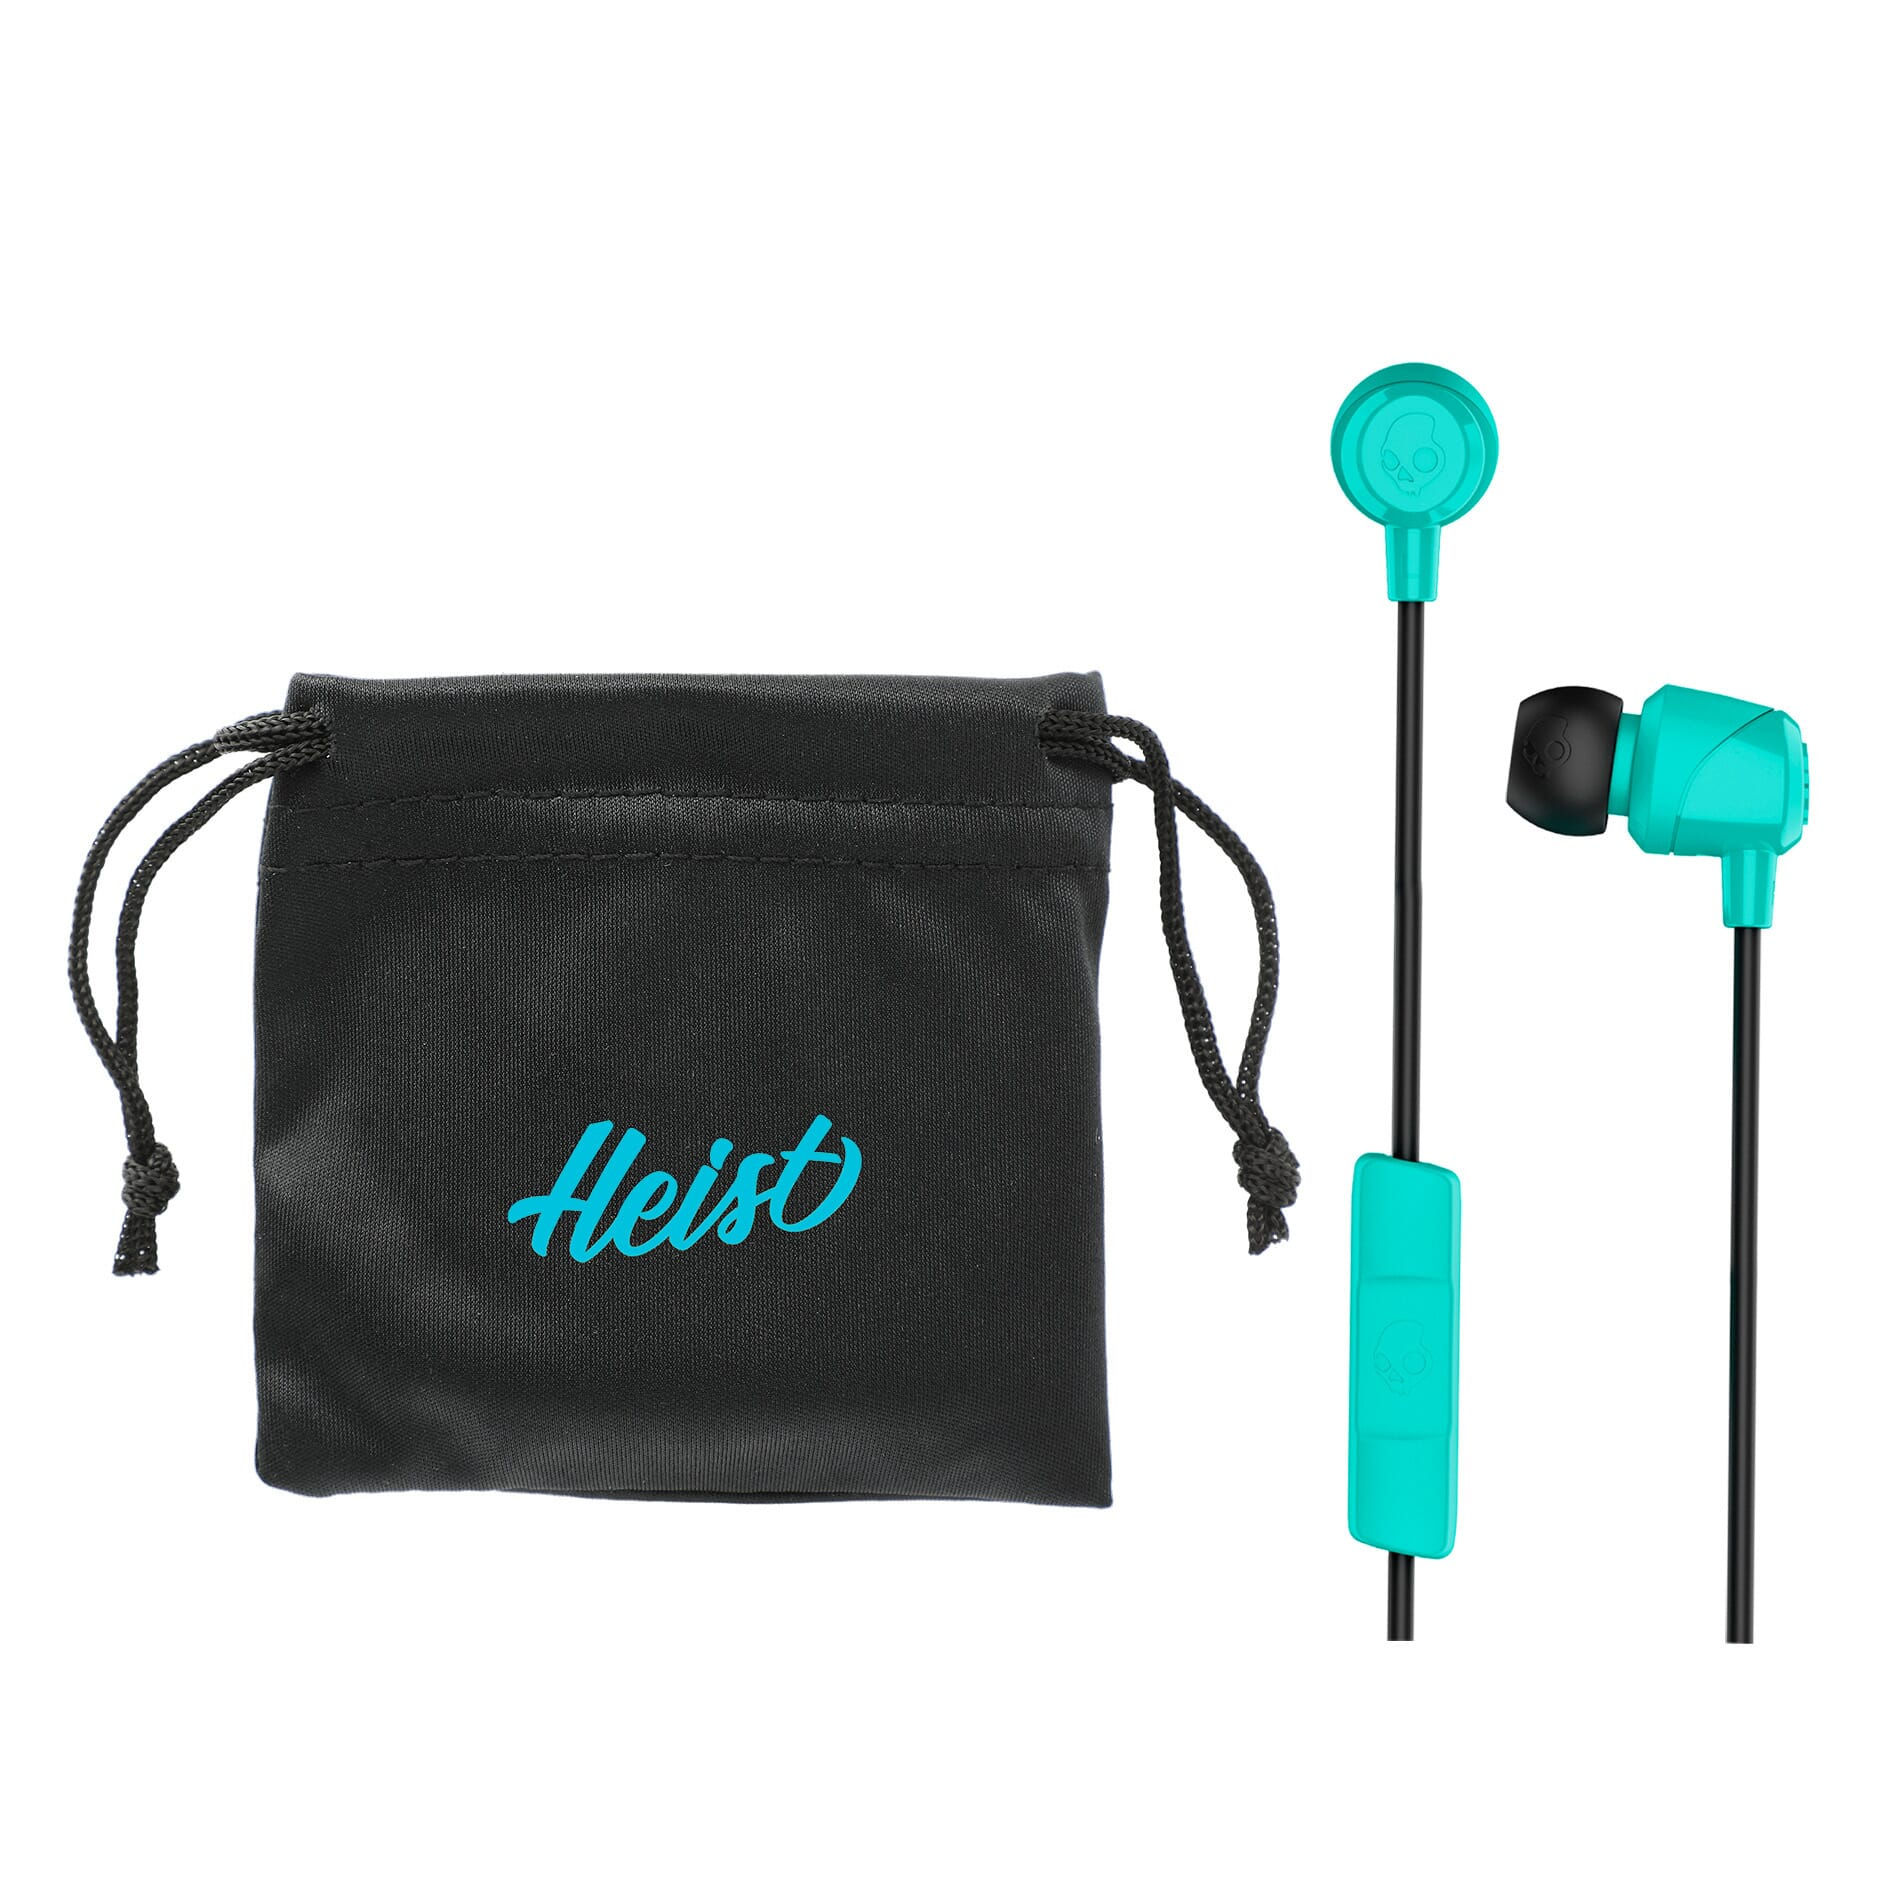 Skullcandy wireless earbuds with customized carry bag